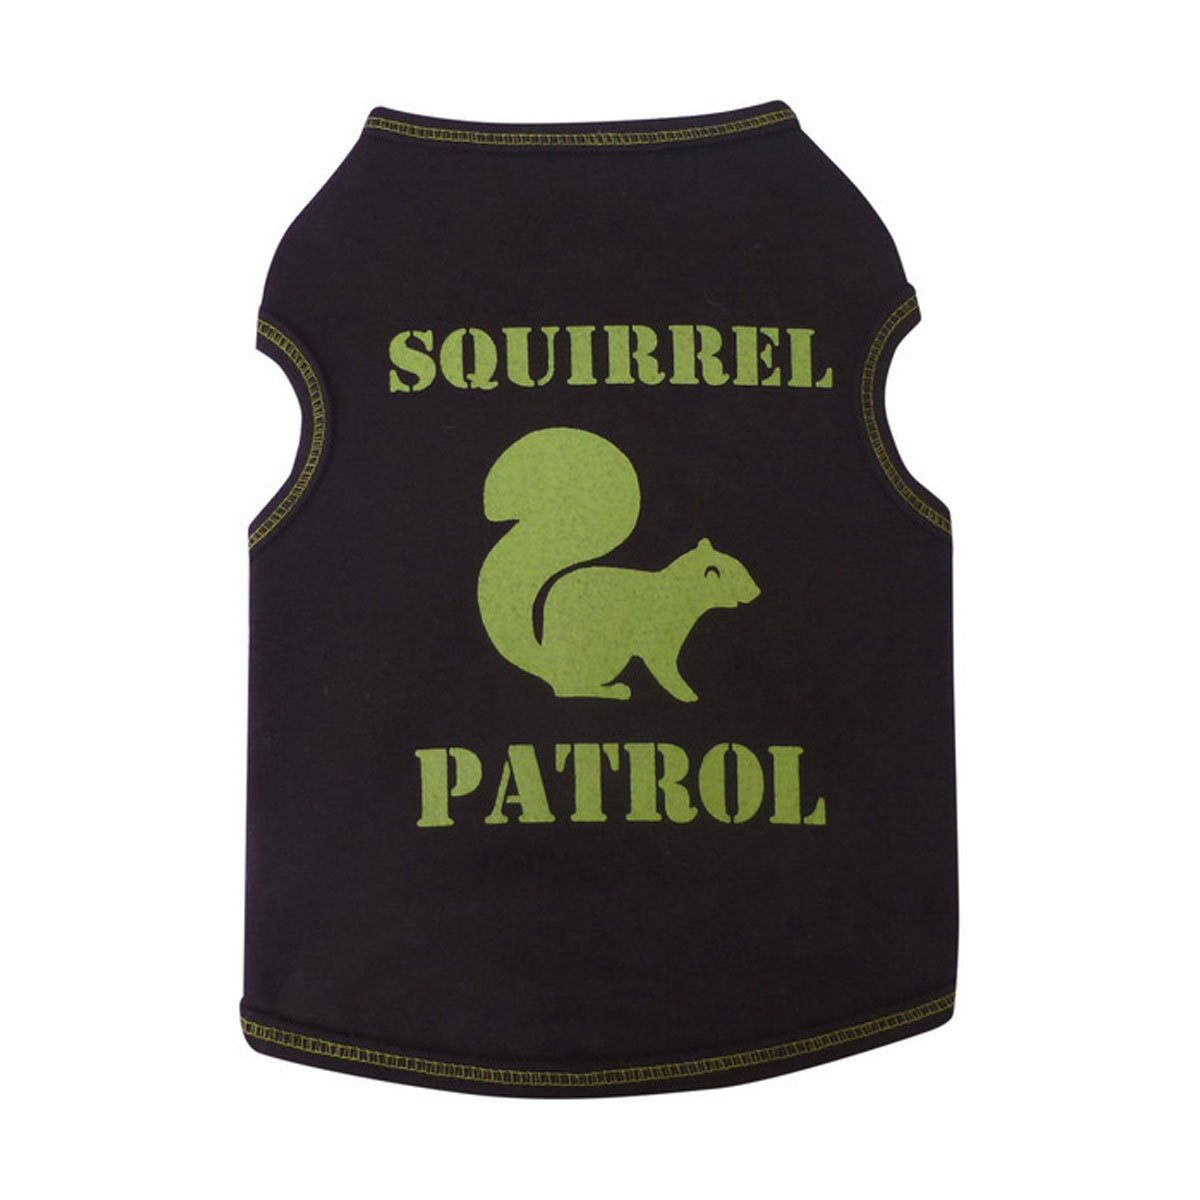 I See Spot Squirrel Patrol Tank Medium Chocolate